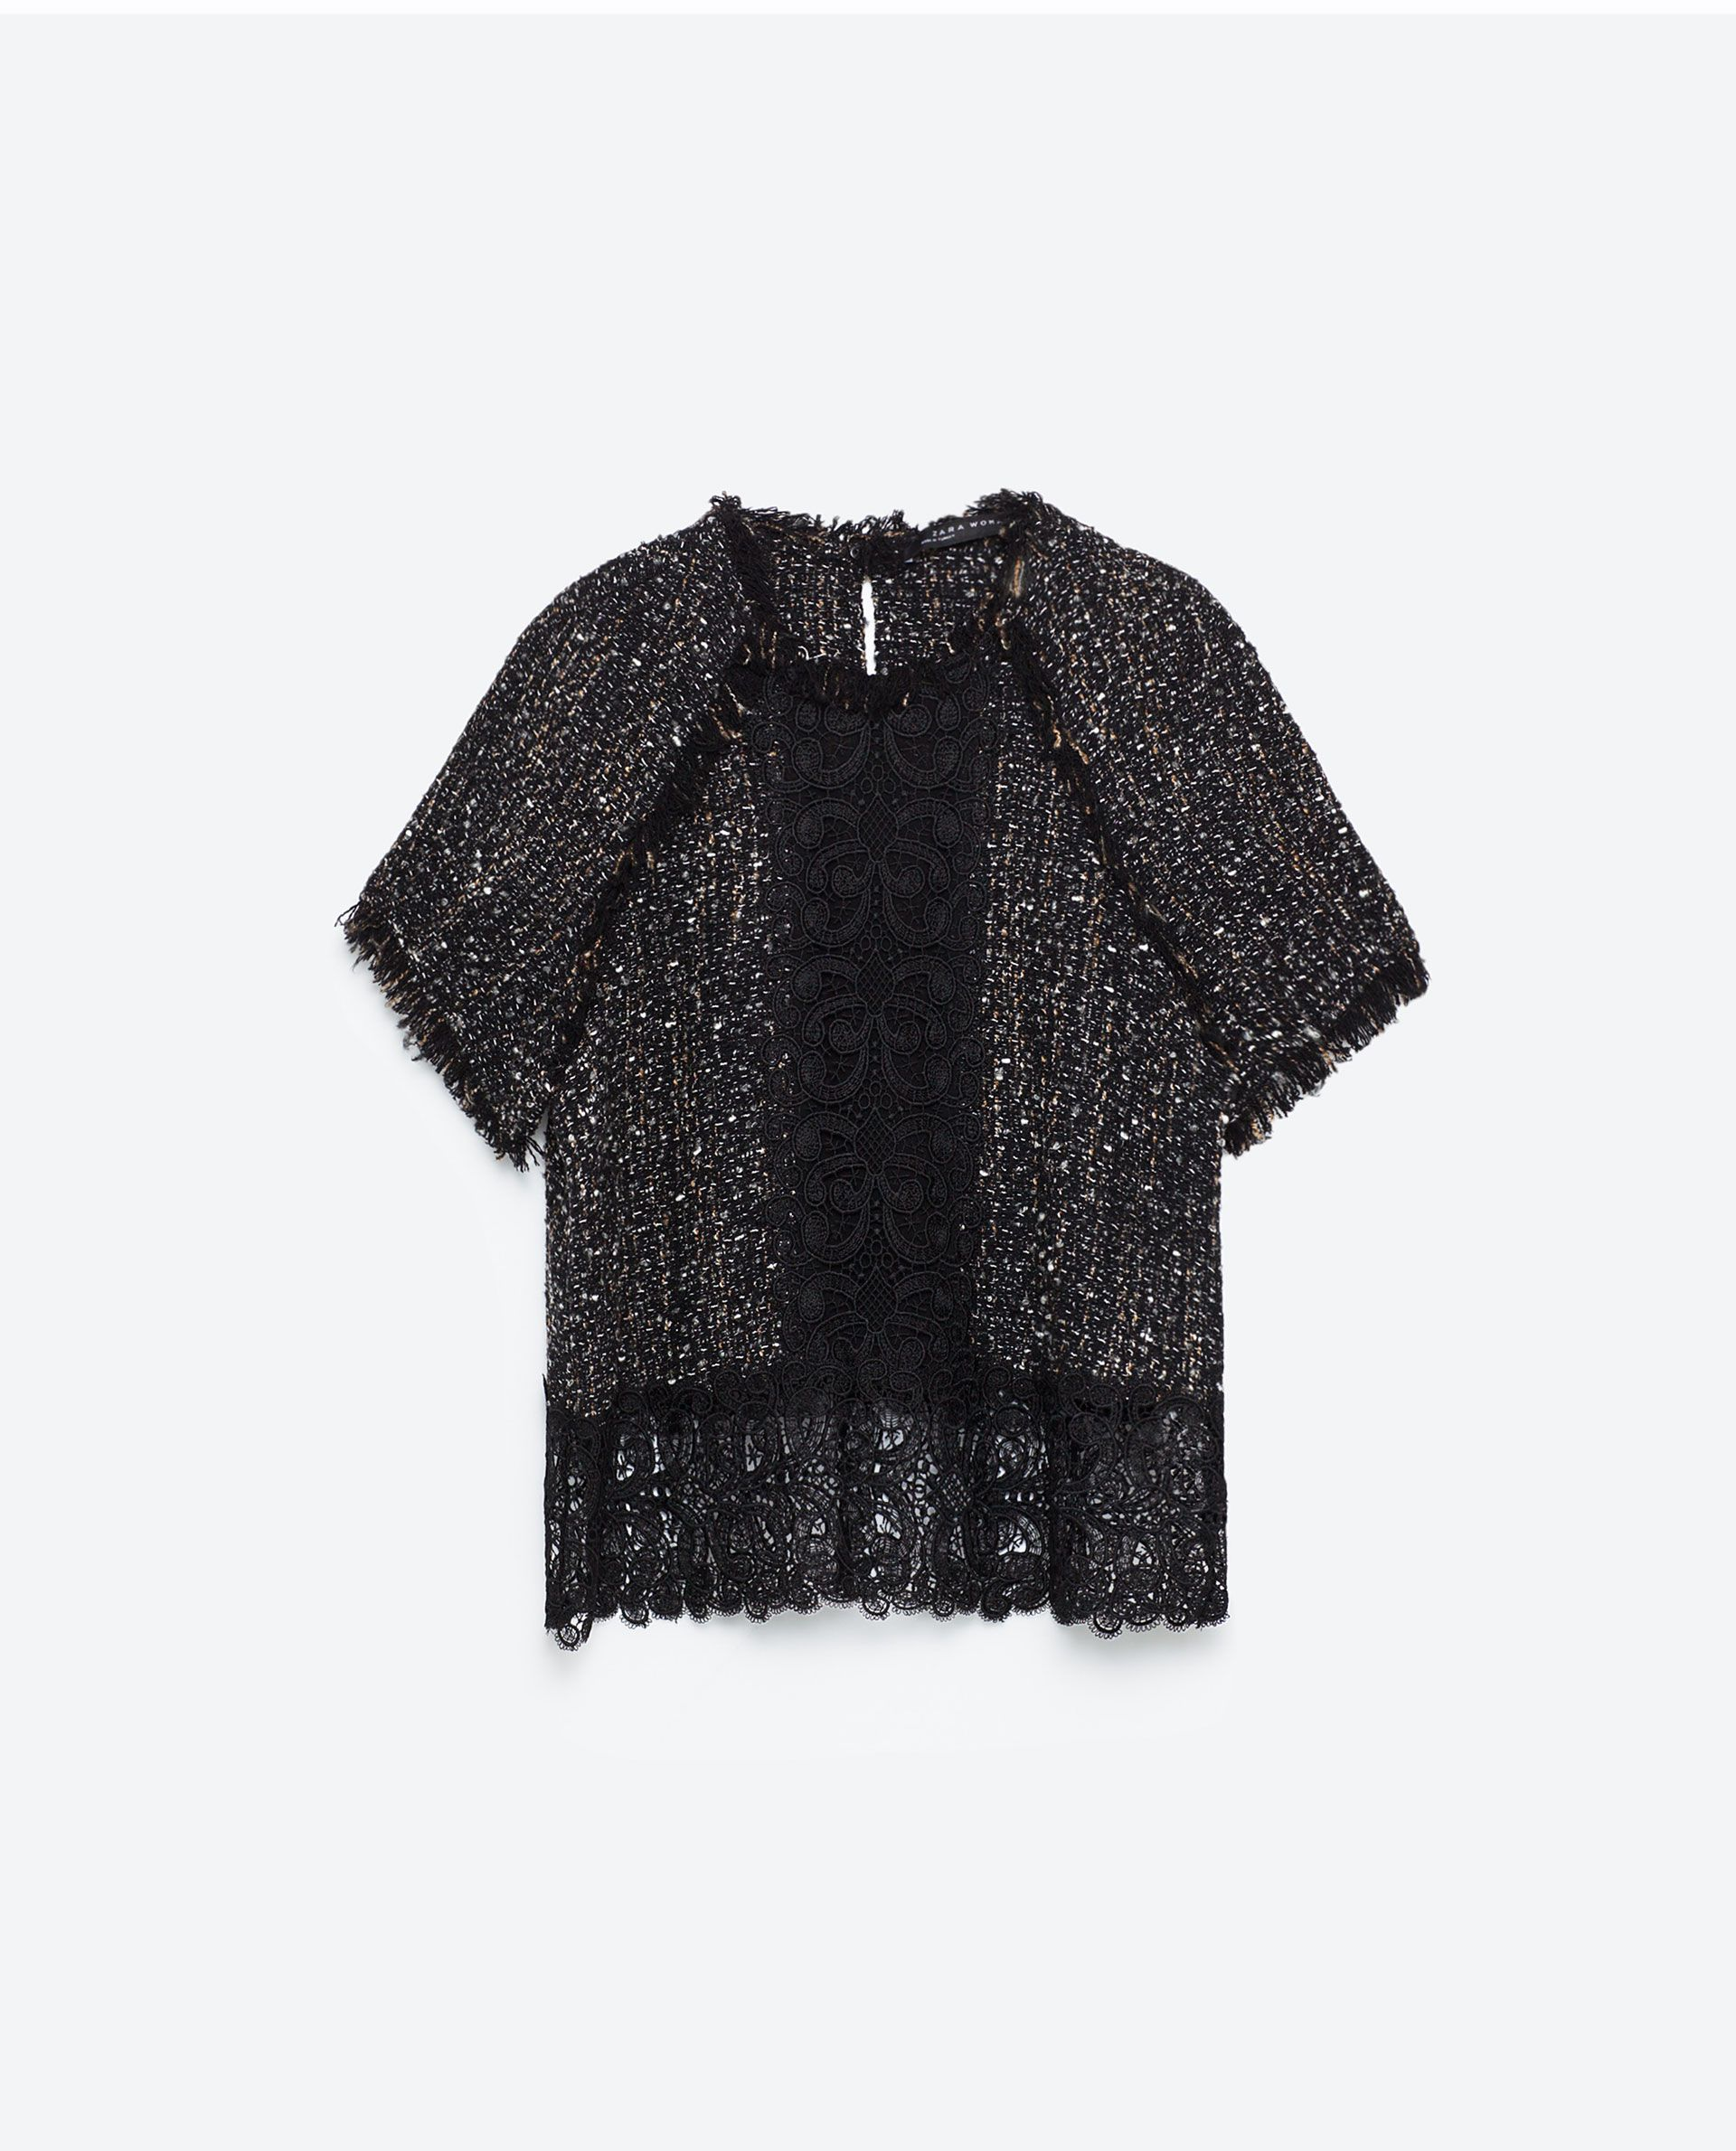 7afeecc193 FRAYED TWEED TOP WITH LACE - NEW IN-WOMAN | ZARA Finland | Fall ...